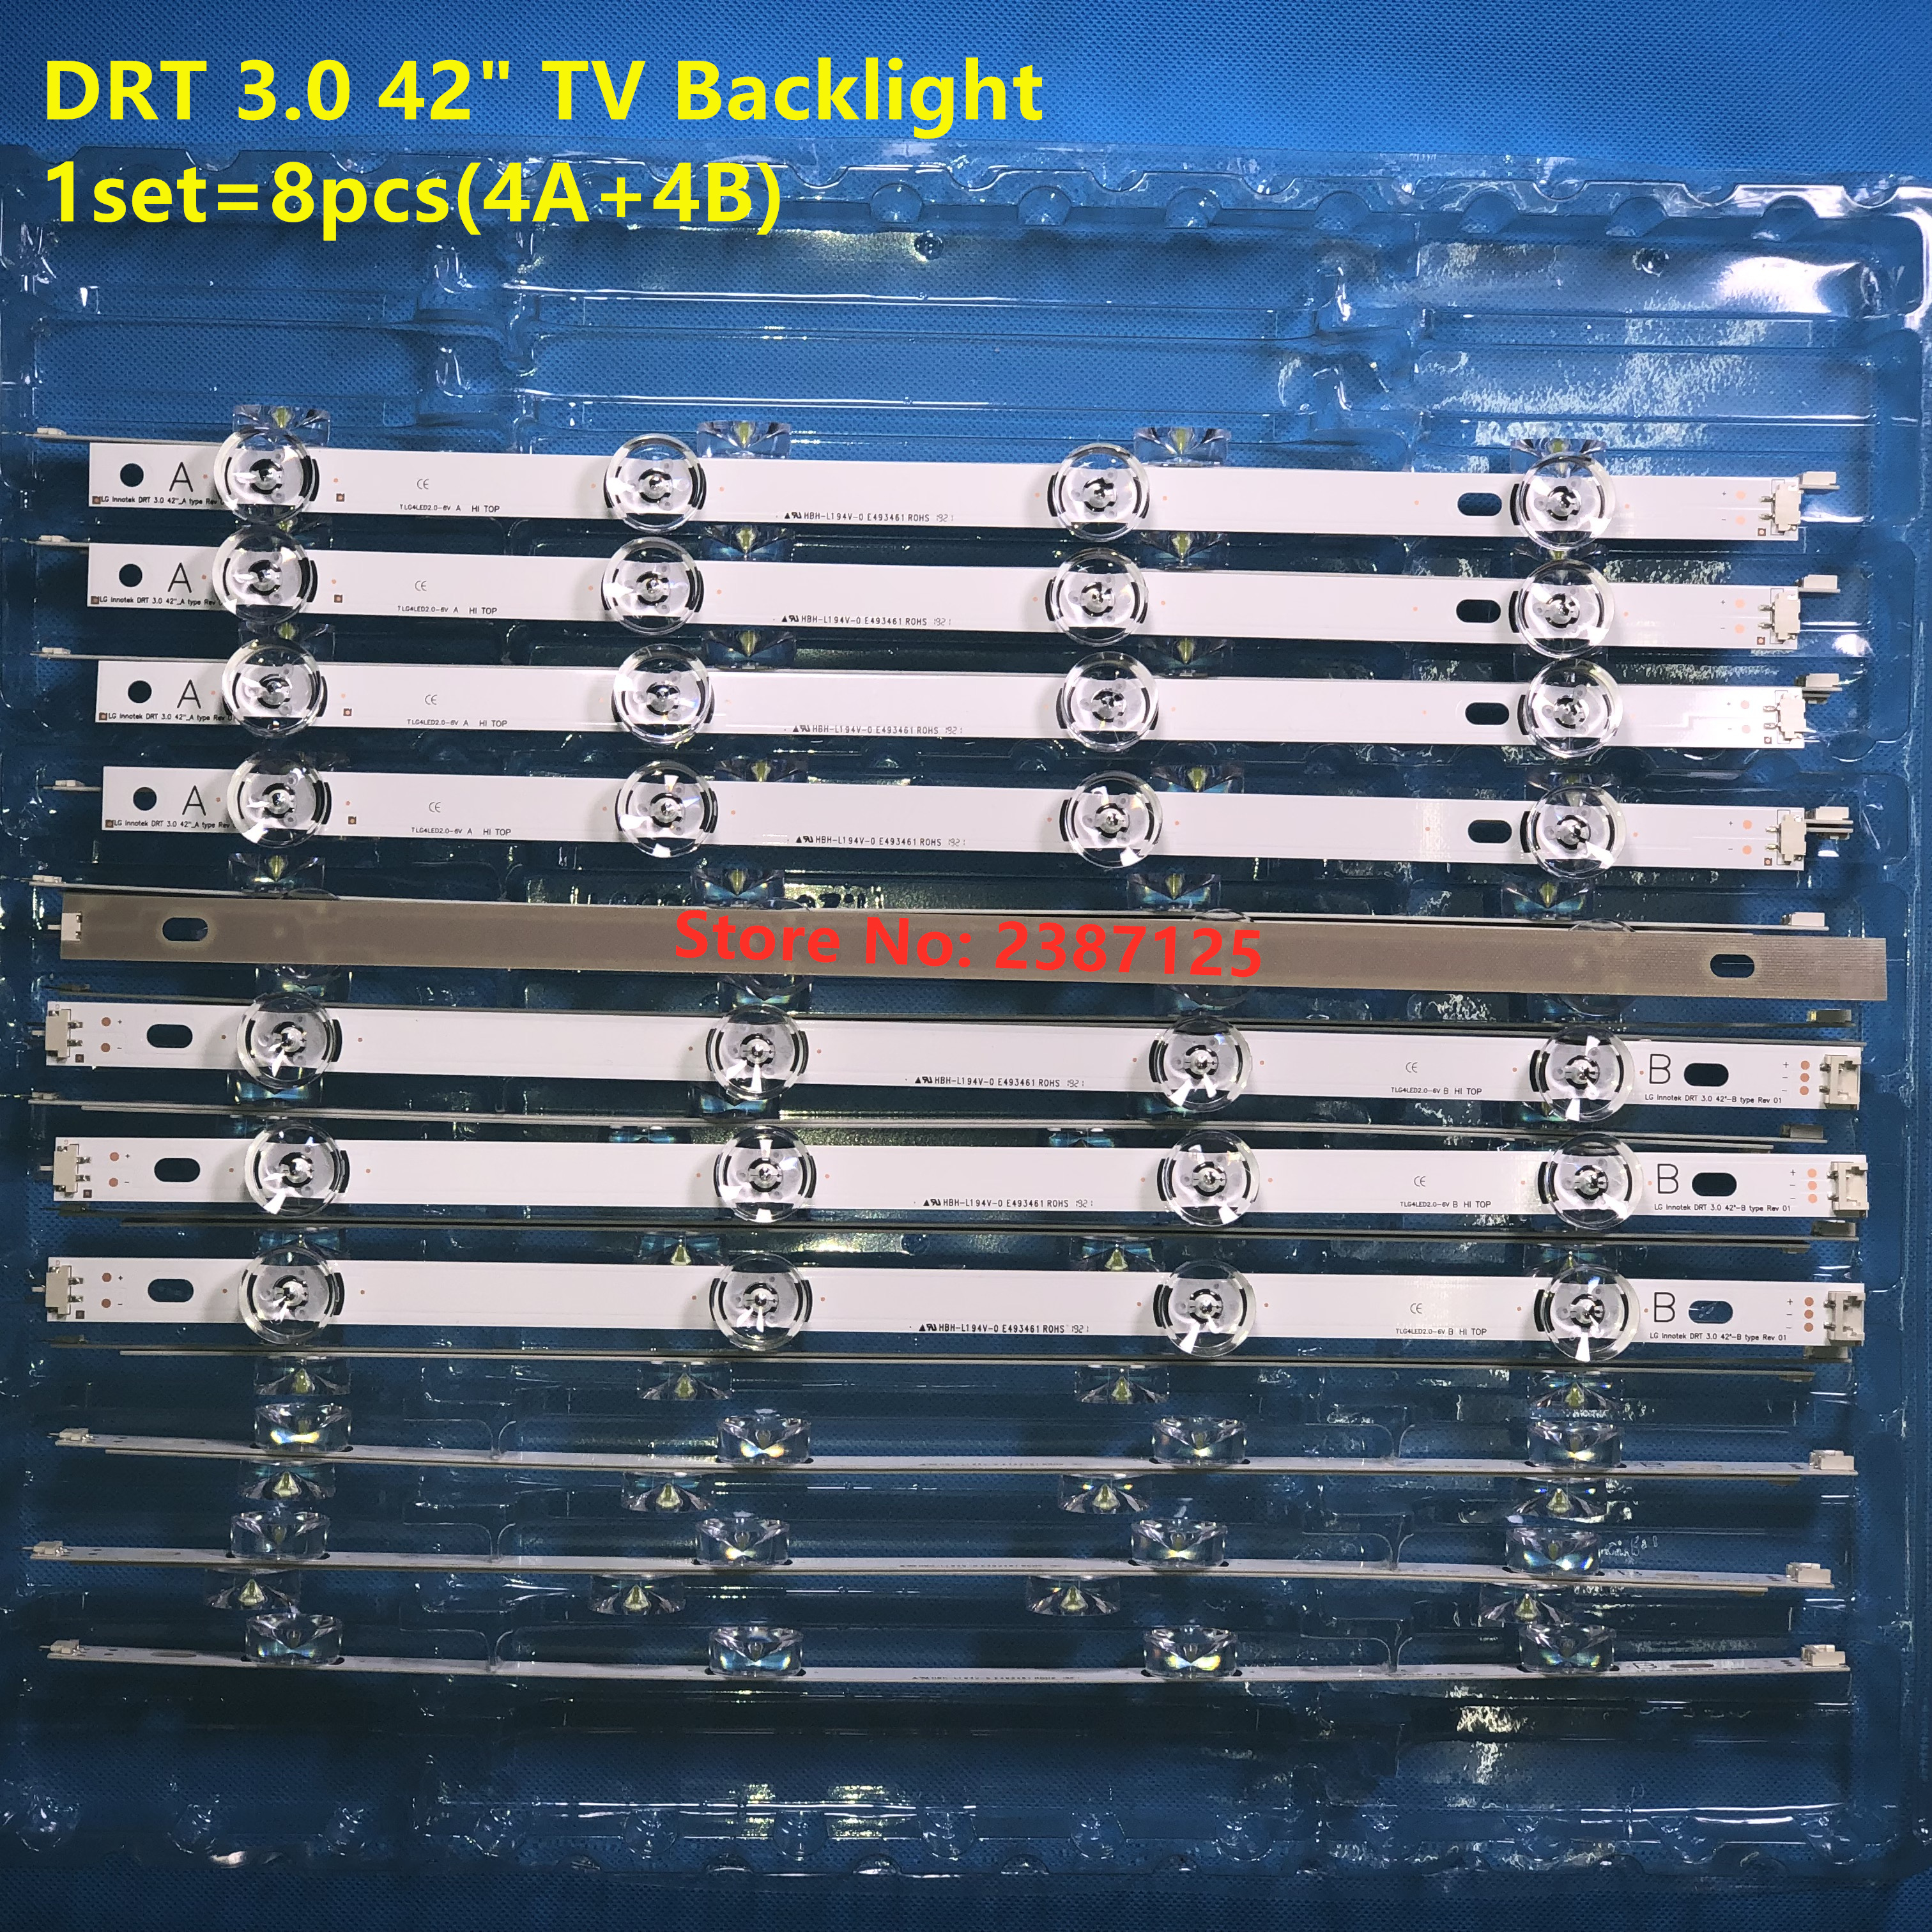 Image 5 - LED backlight strip for Lg drt 3.0 42 DIRECT AGF78402101 NC420DUN VUBP1 T420HVF07 42LB650V 42LB561U 42LB582V 42LB582B 42LB5550-in LED Bar Lights from Lights & Lighting